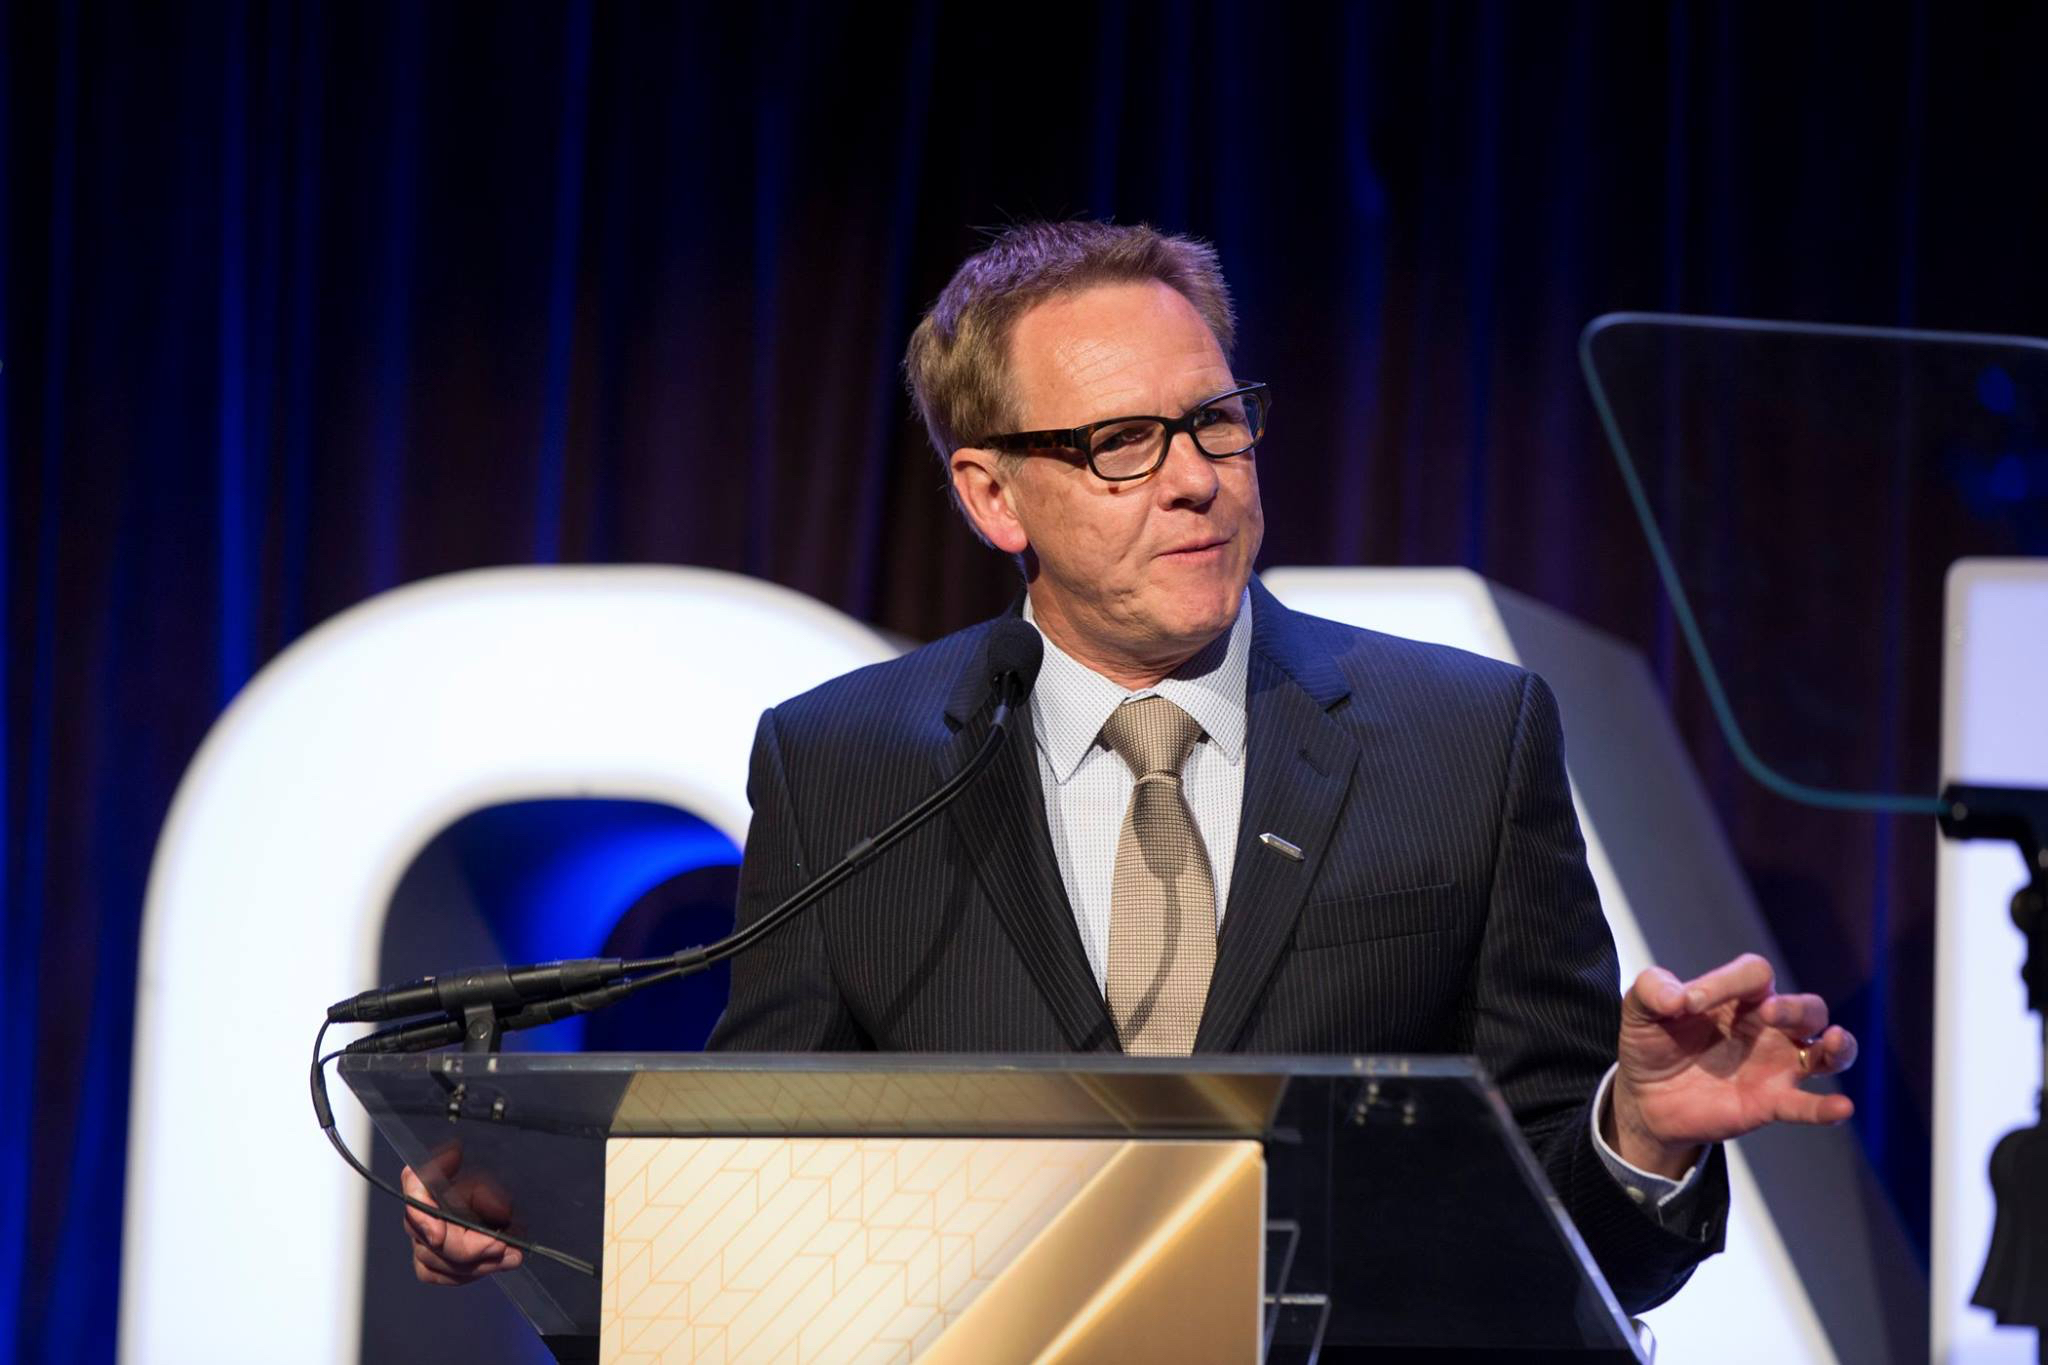 The One Show 2020 and ADC 99th Annual Award Winners To Be Announced With High-Quality Streaming Events Due to Coronavirus Uncertainty